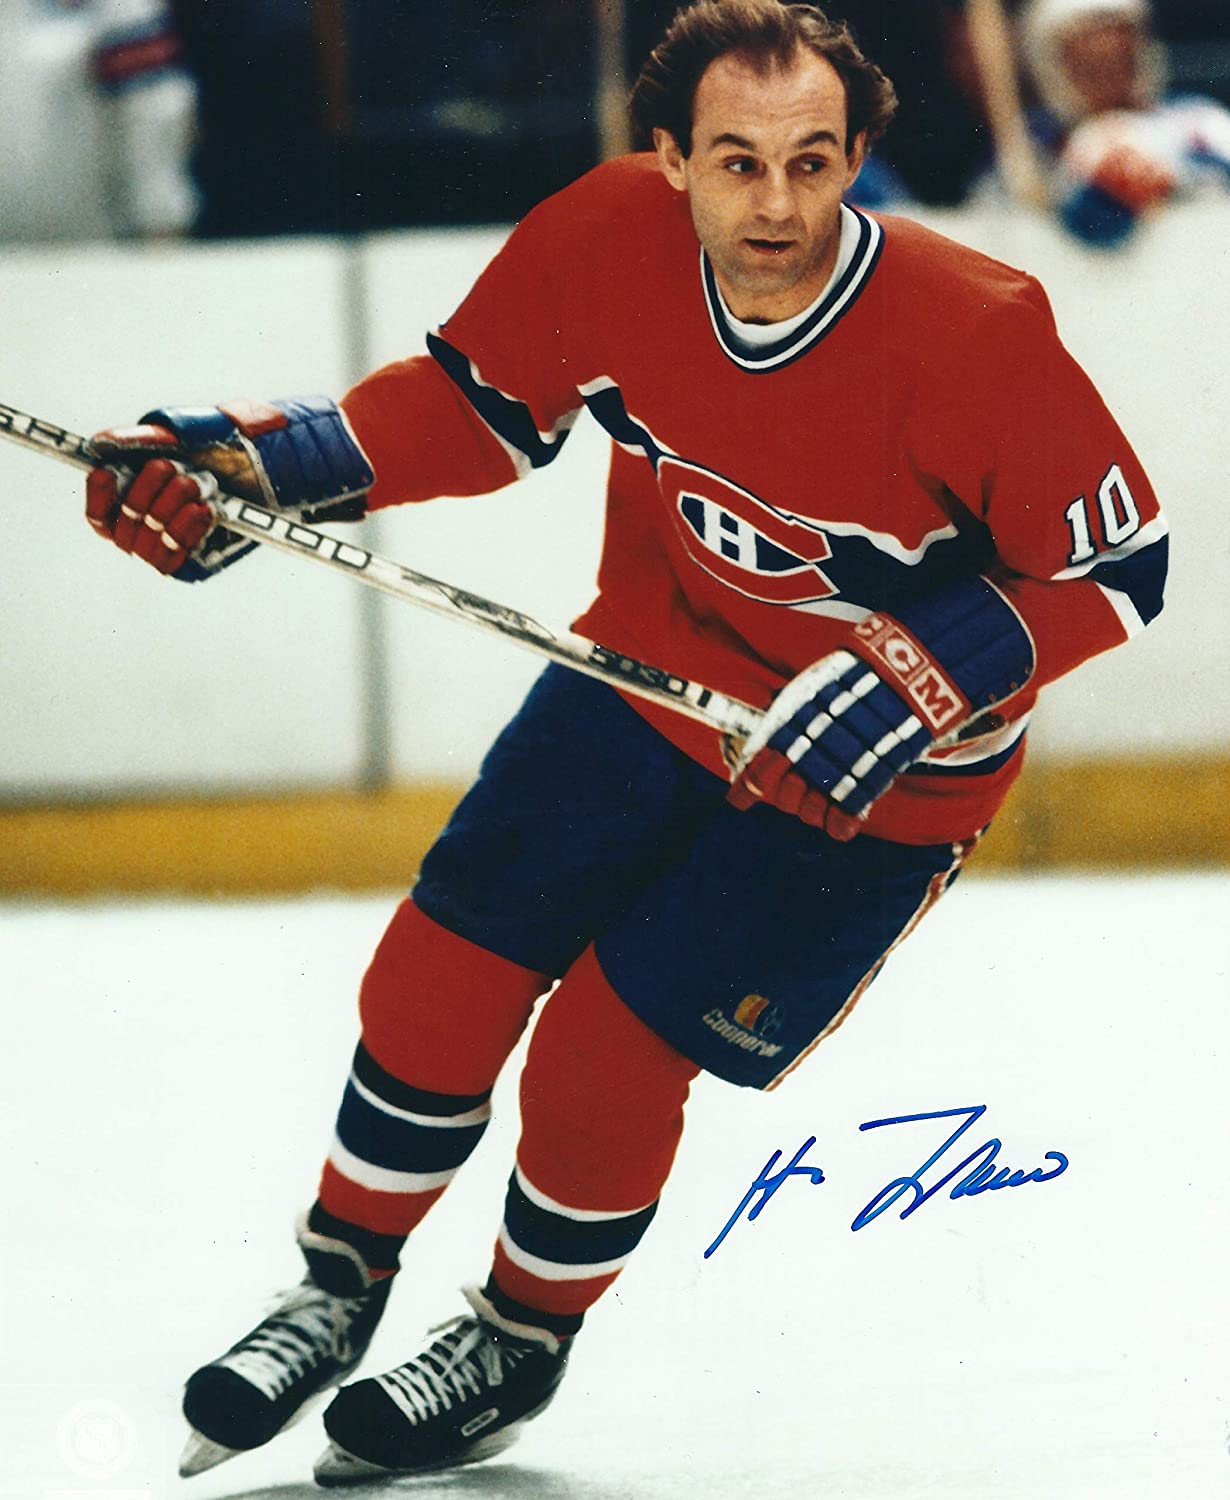 f49b18e40 Autographed Guy Lafleur 8x10 Montreal Canadiens Photo at Amazon s Sports  Collectibles Store